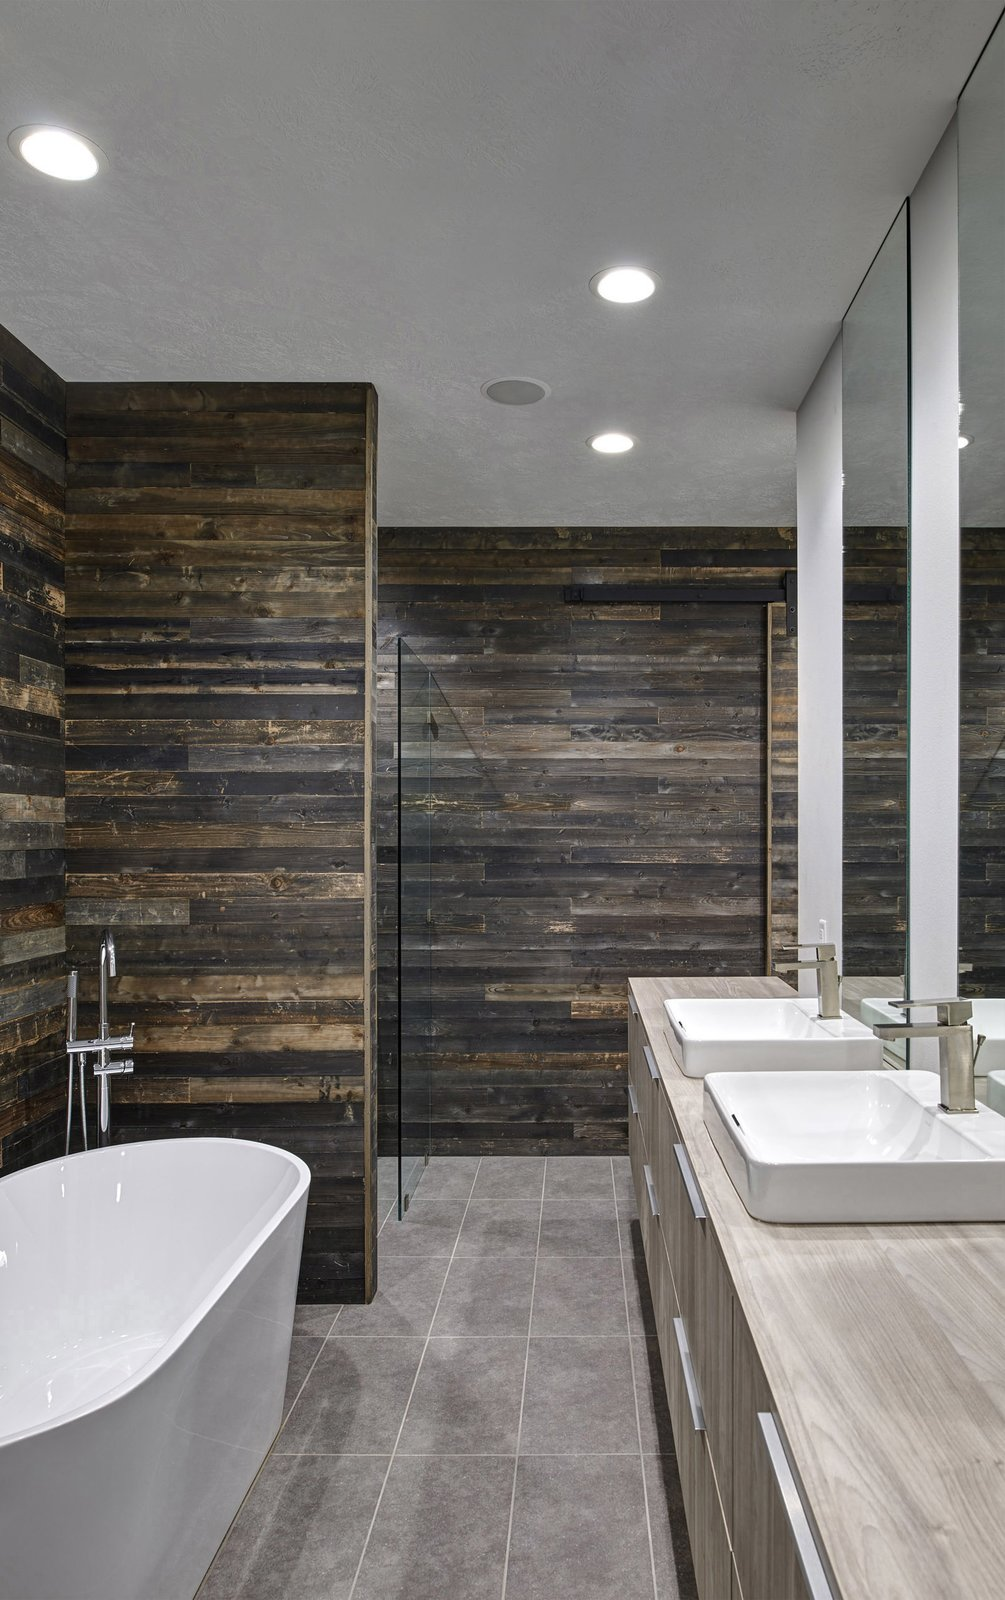 View showing the guest bathroom with formerly-exterior  cedar-sheathed walls. (2017) Tagged: Bath Room, Wood Counter, Laminate Counter, Ceramic Tile Floor, Vessel Sink, Freestanding Tub, Full Shower, and Recessed Lighting.  530 house by Nathan Kalaher